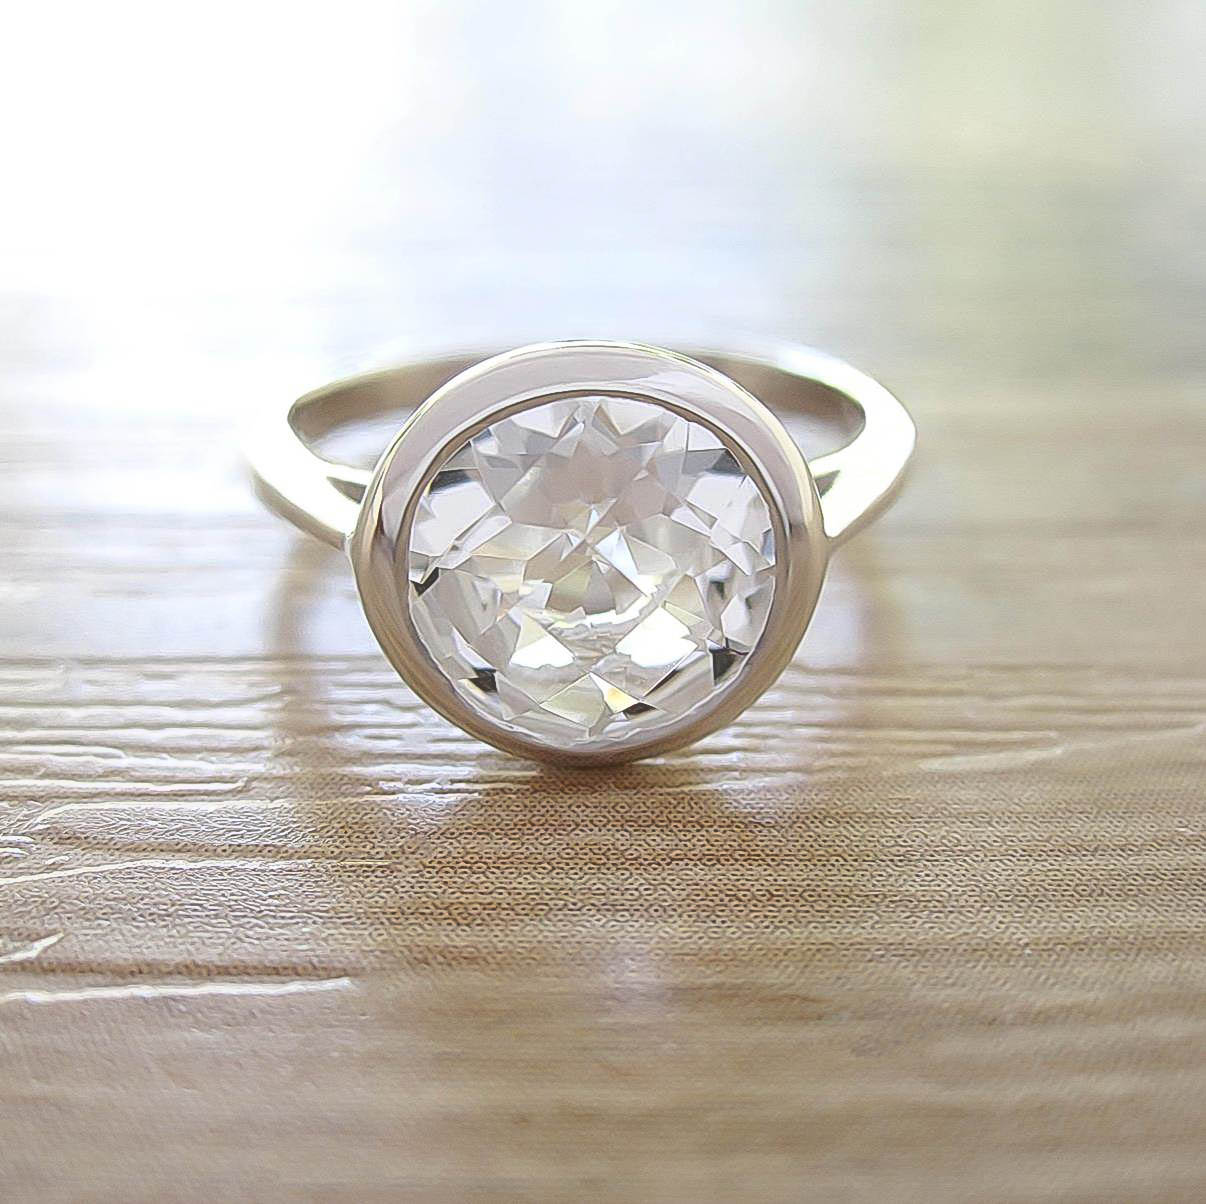 แหวน White Topaz Sterling Silver สี Rhodium รุ่น Dashing